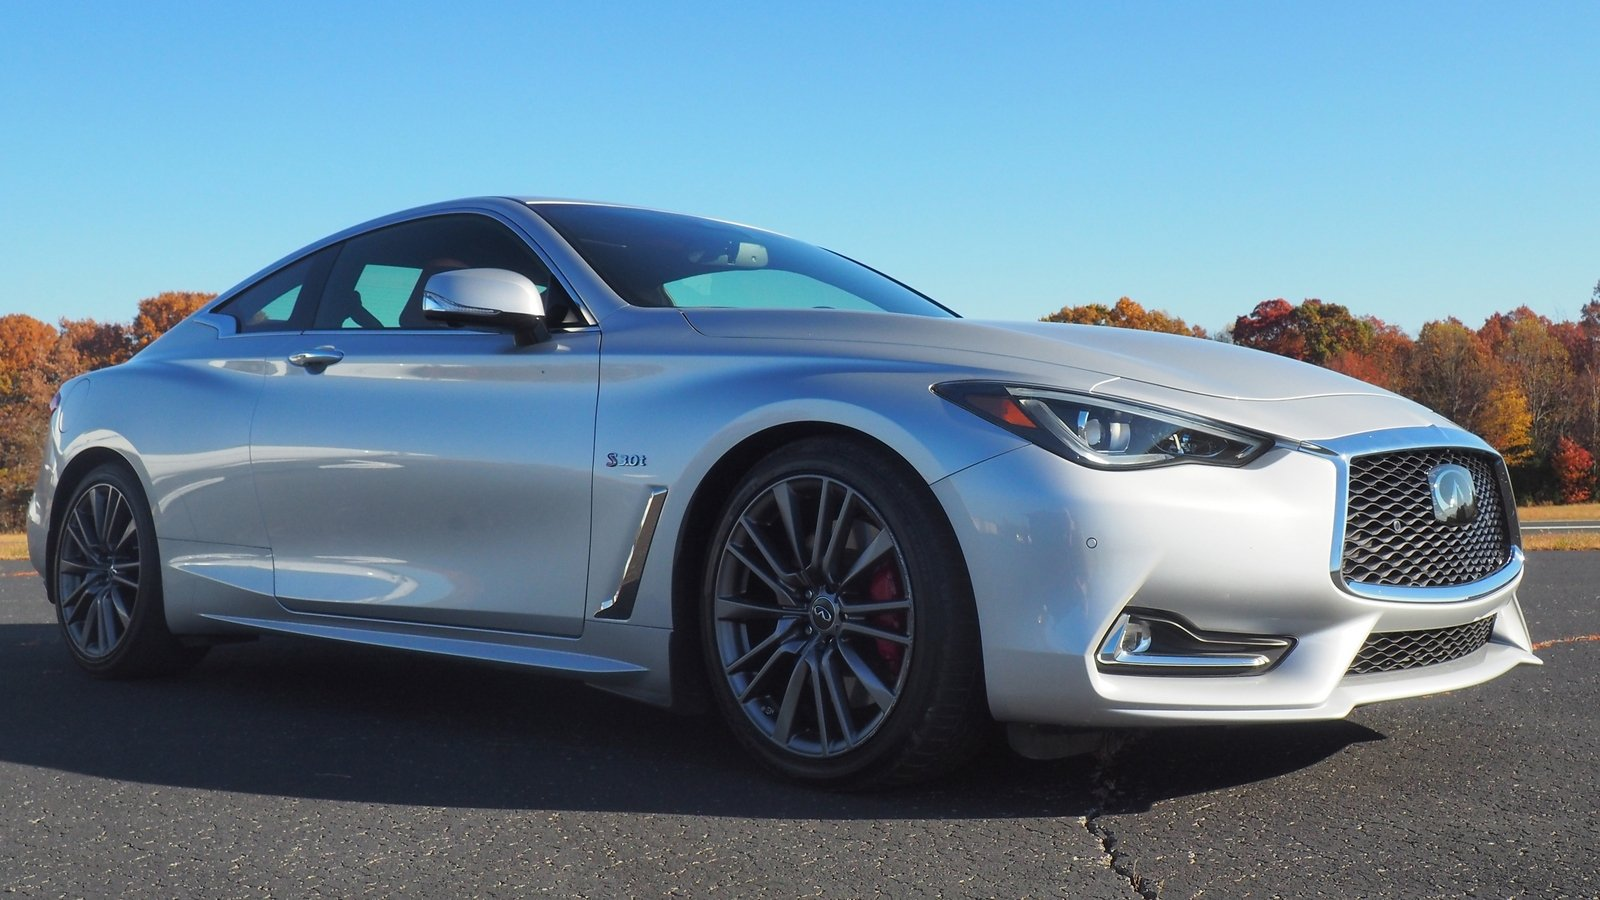 2017 infiniti q60s driven picture 705287 car review top speed. Black Bedroom Furniture Sets. Home Design Ideas